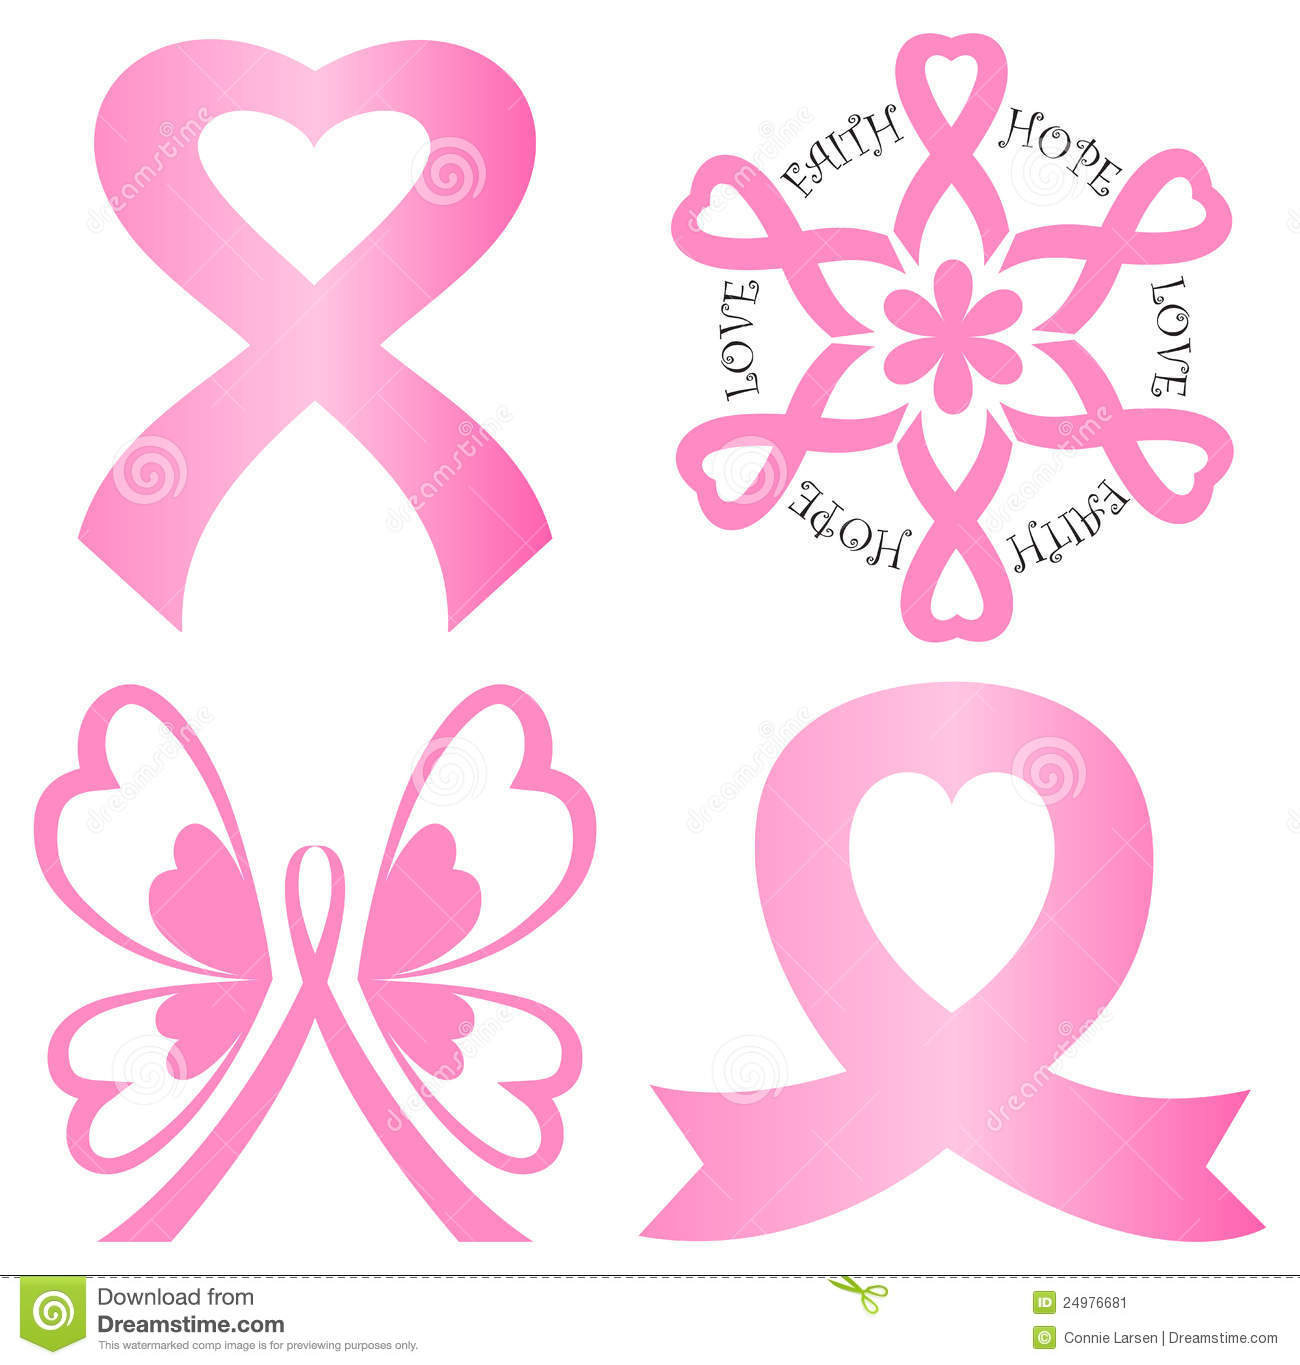 Support Pink Ribbons Clipart Clipart Suggest